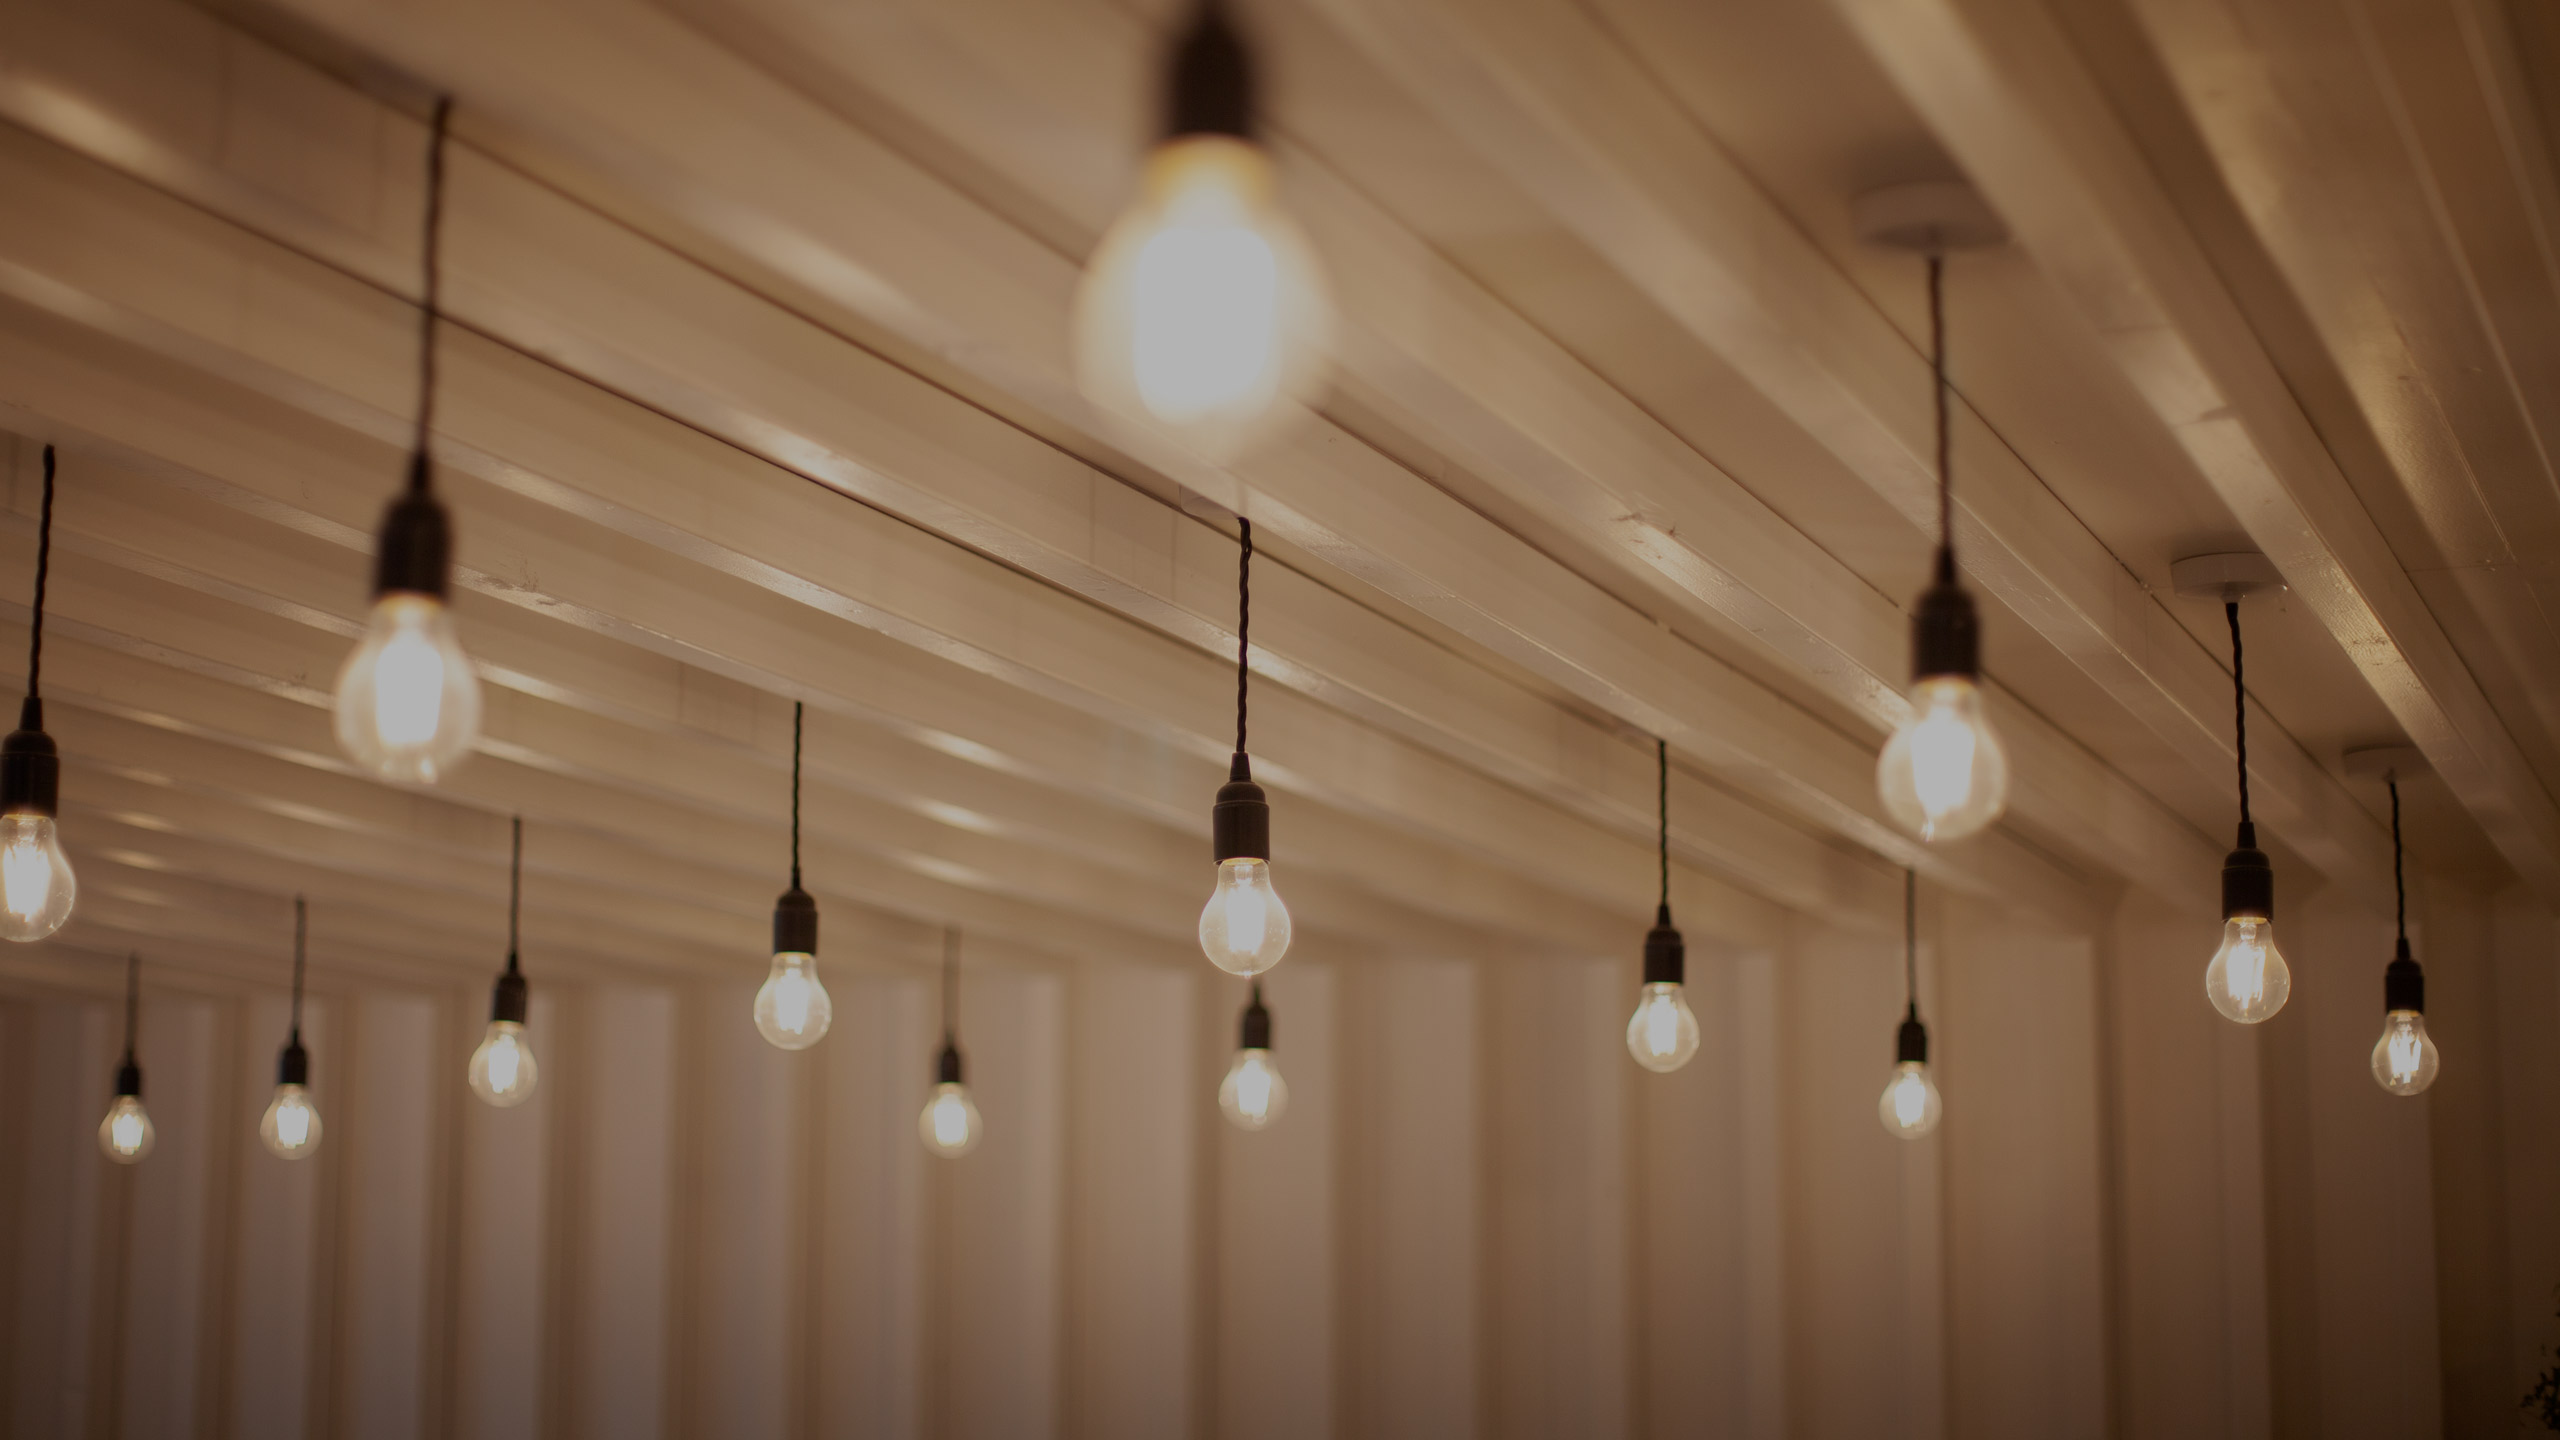 Modern lighting installation - electrical services by RJ Steeles building contractors